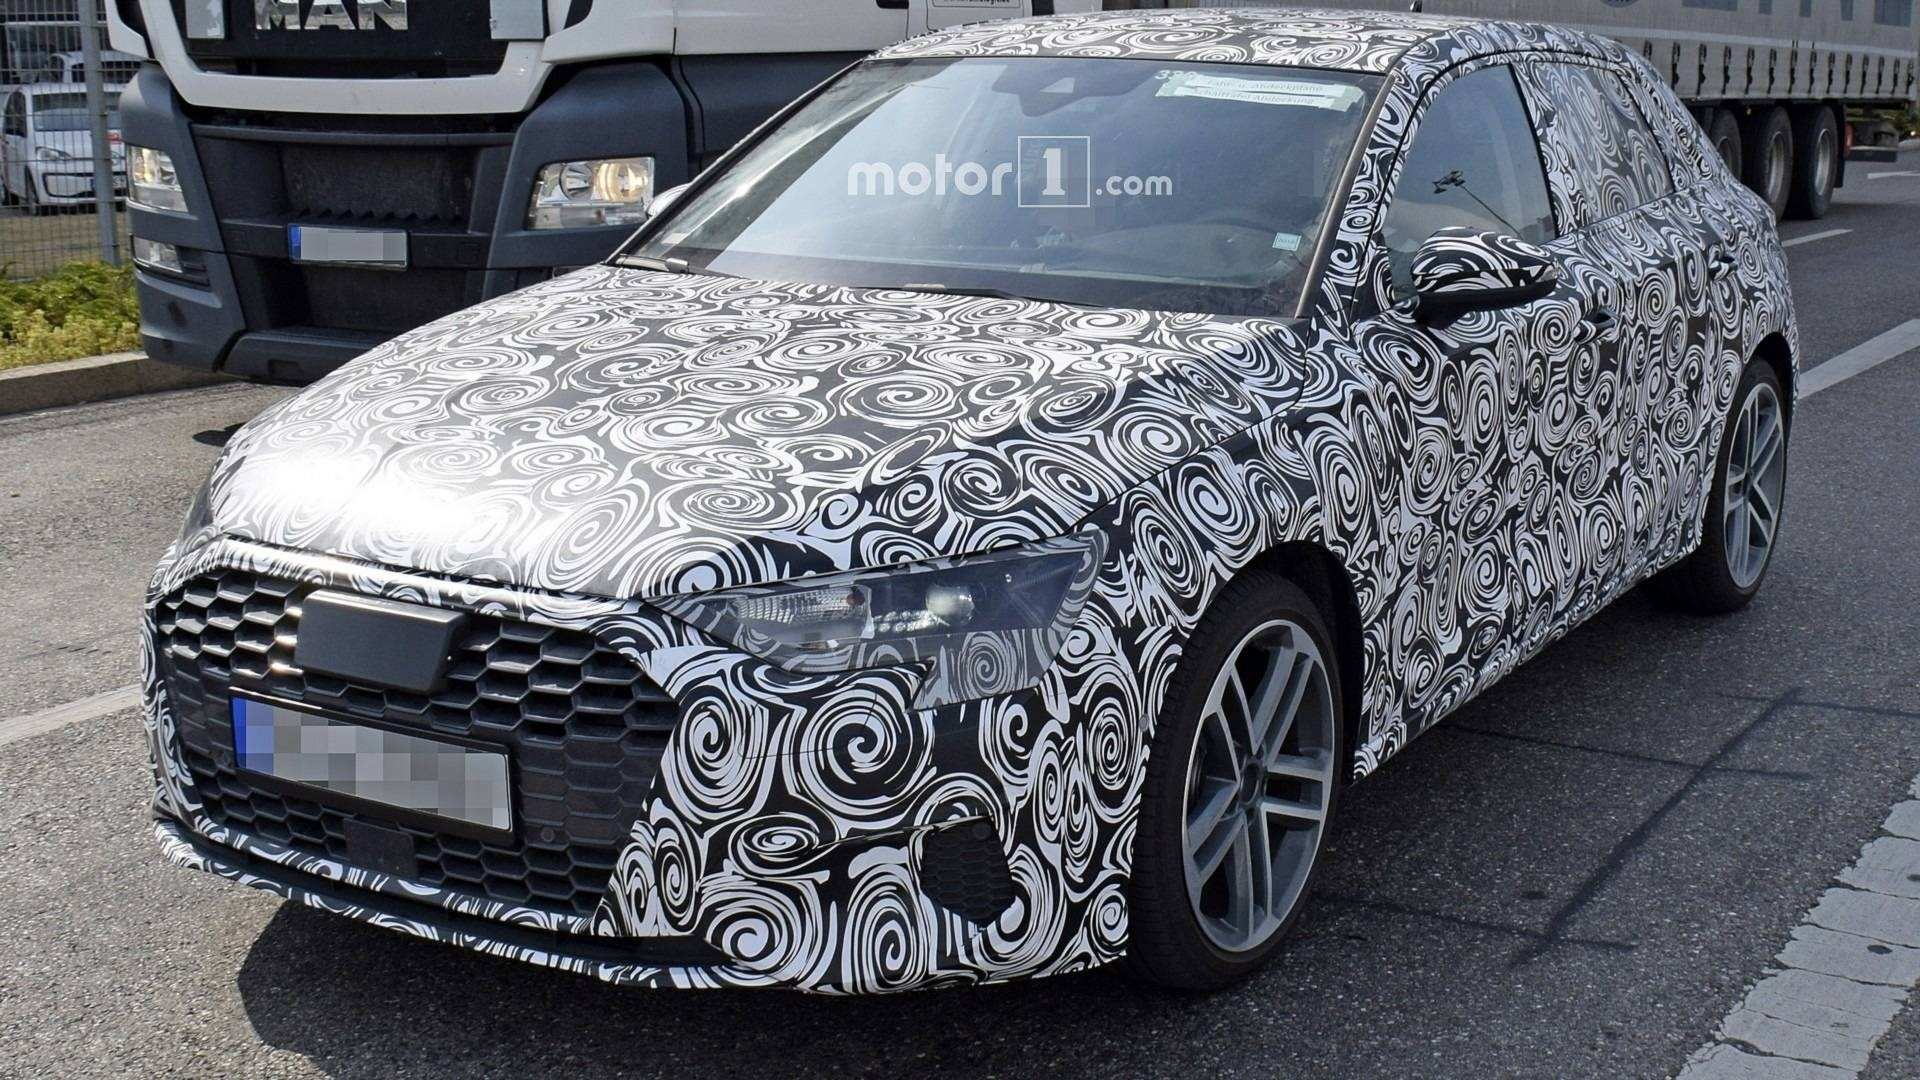 37 Gallery of The Audi A3 Coupe 2019 Review Specs And Release Date Configurations for The Audi A3 Coupe 2019 Review Specs And Release Date